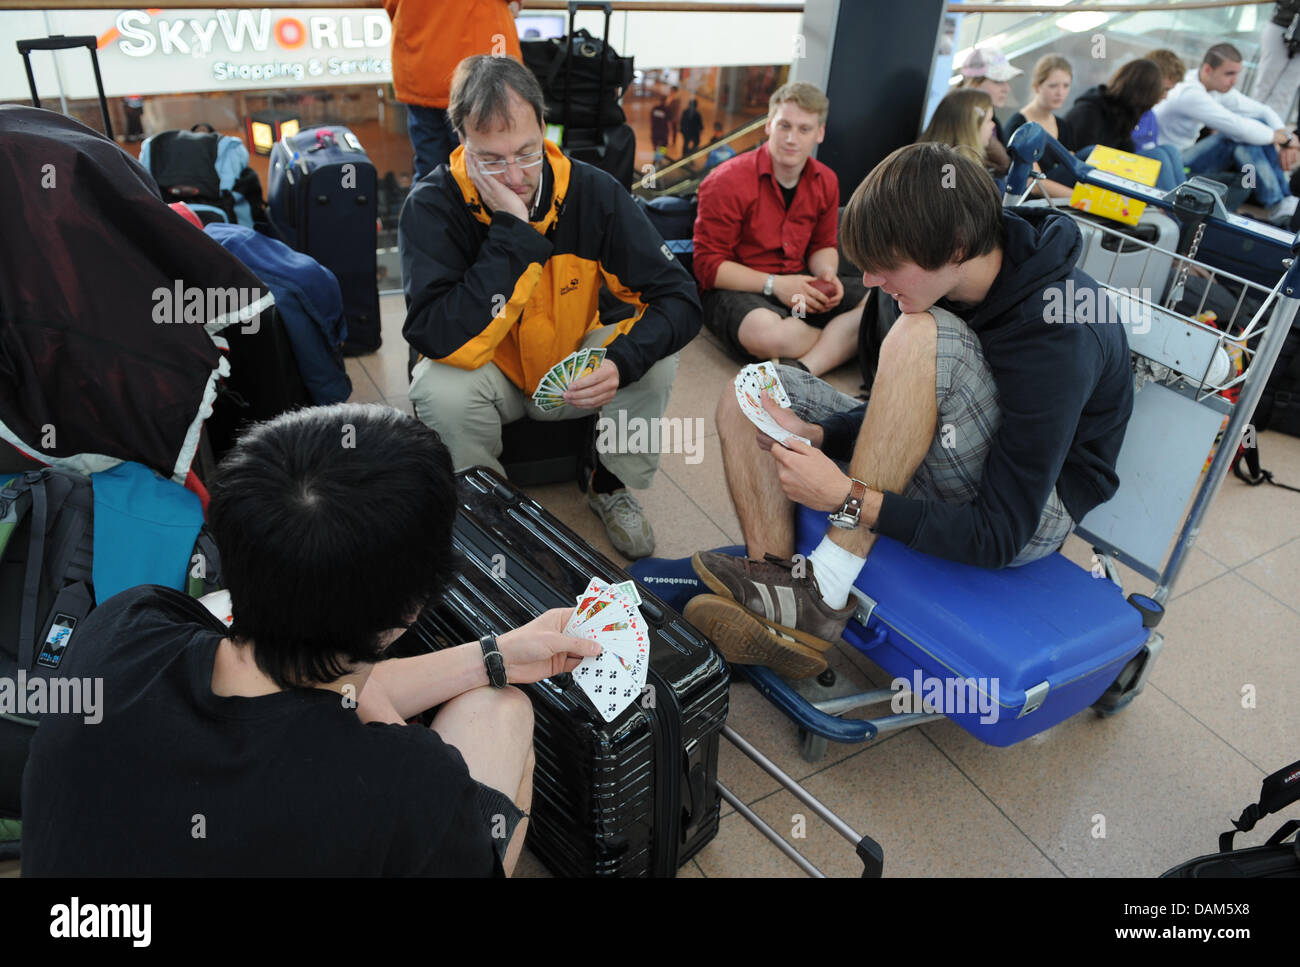 Pupils of the twelfth grade from Eckernfoerde play cards at the airport in Hamburg, due to their delayed flight - Stock Image